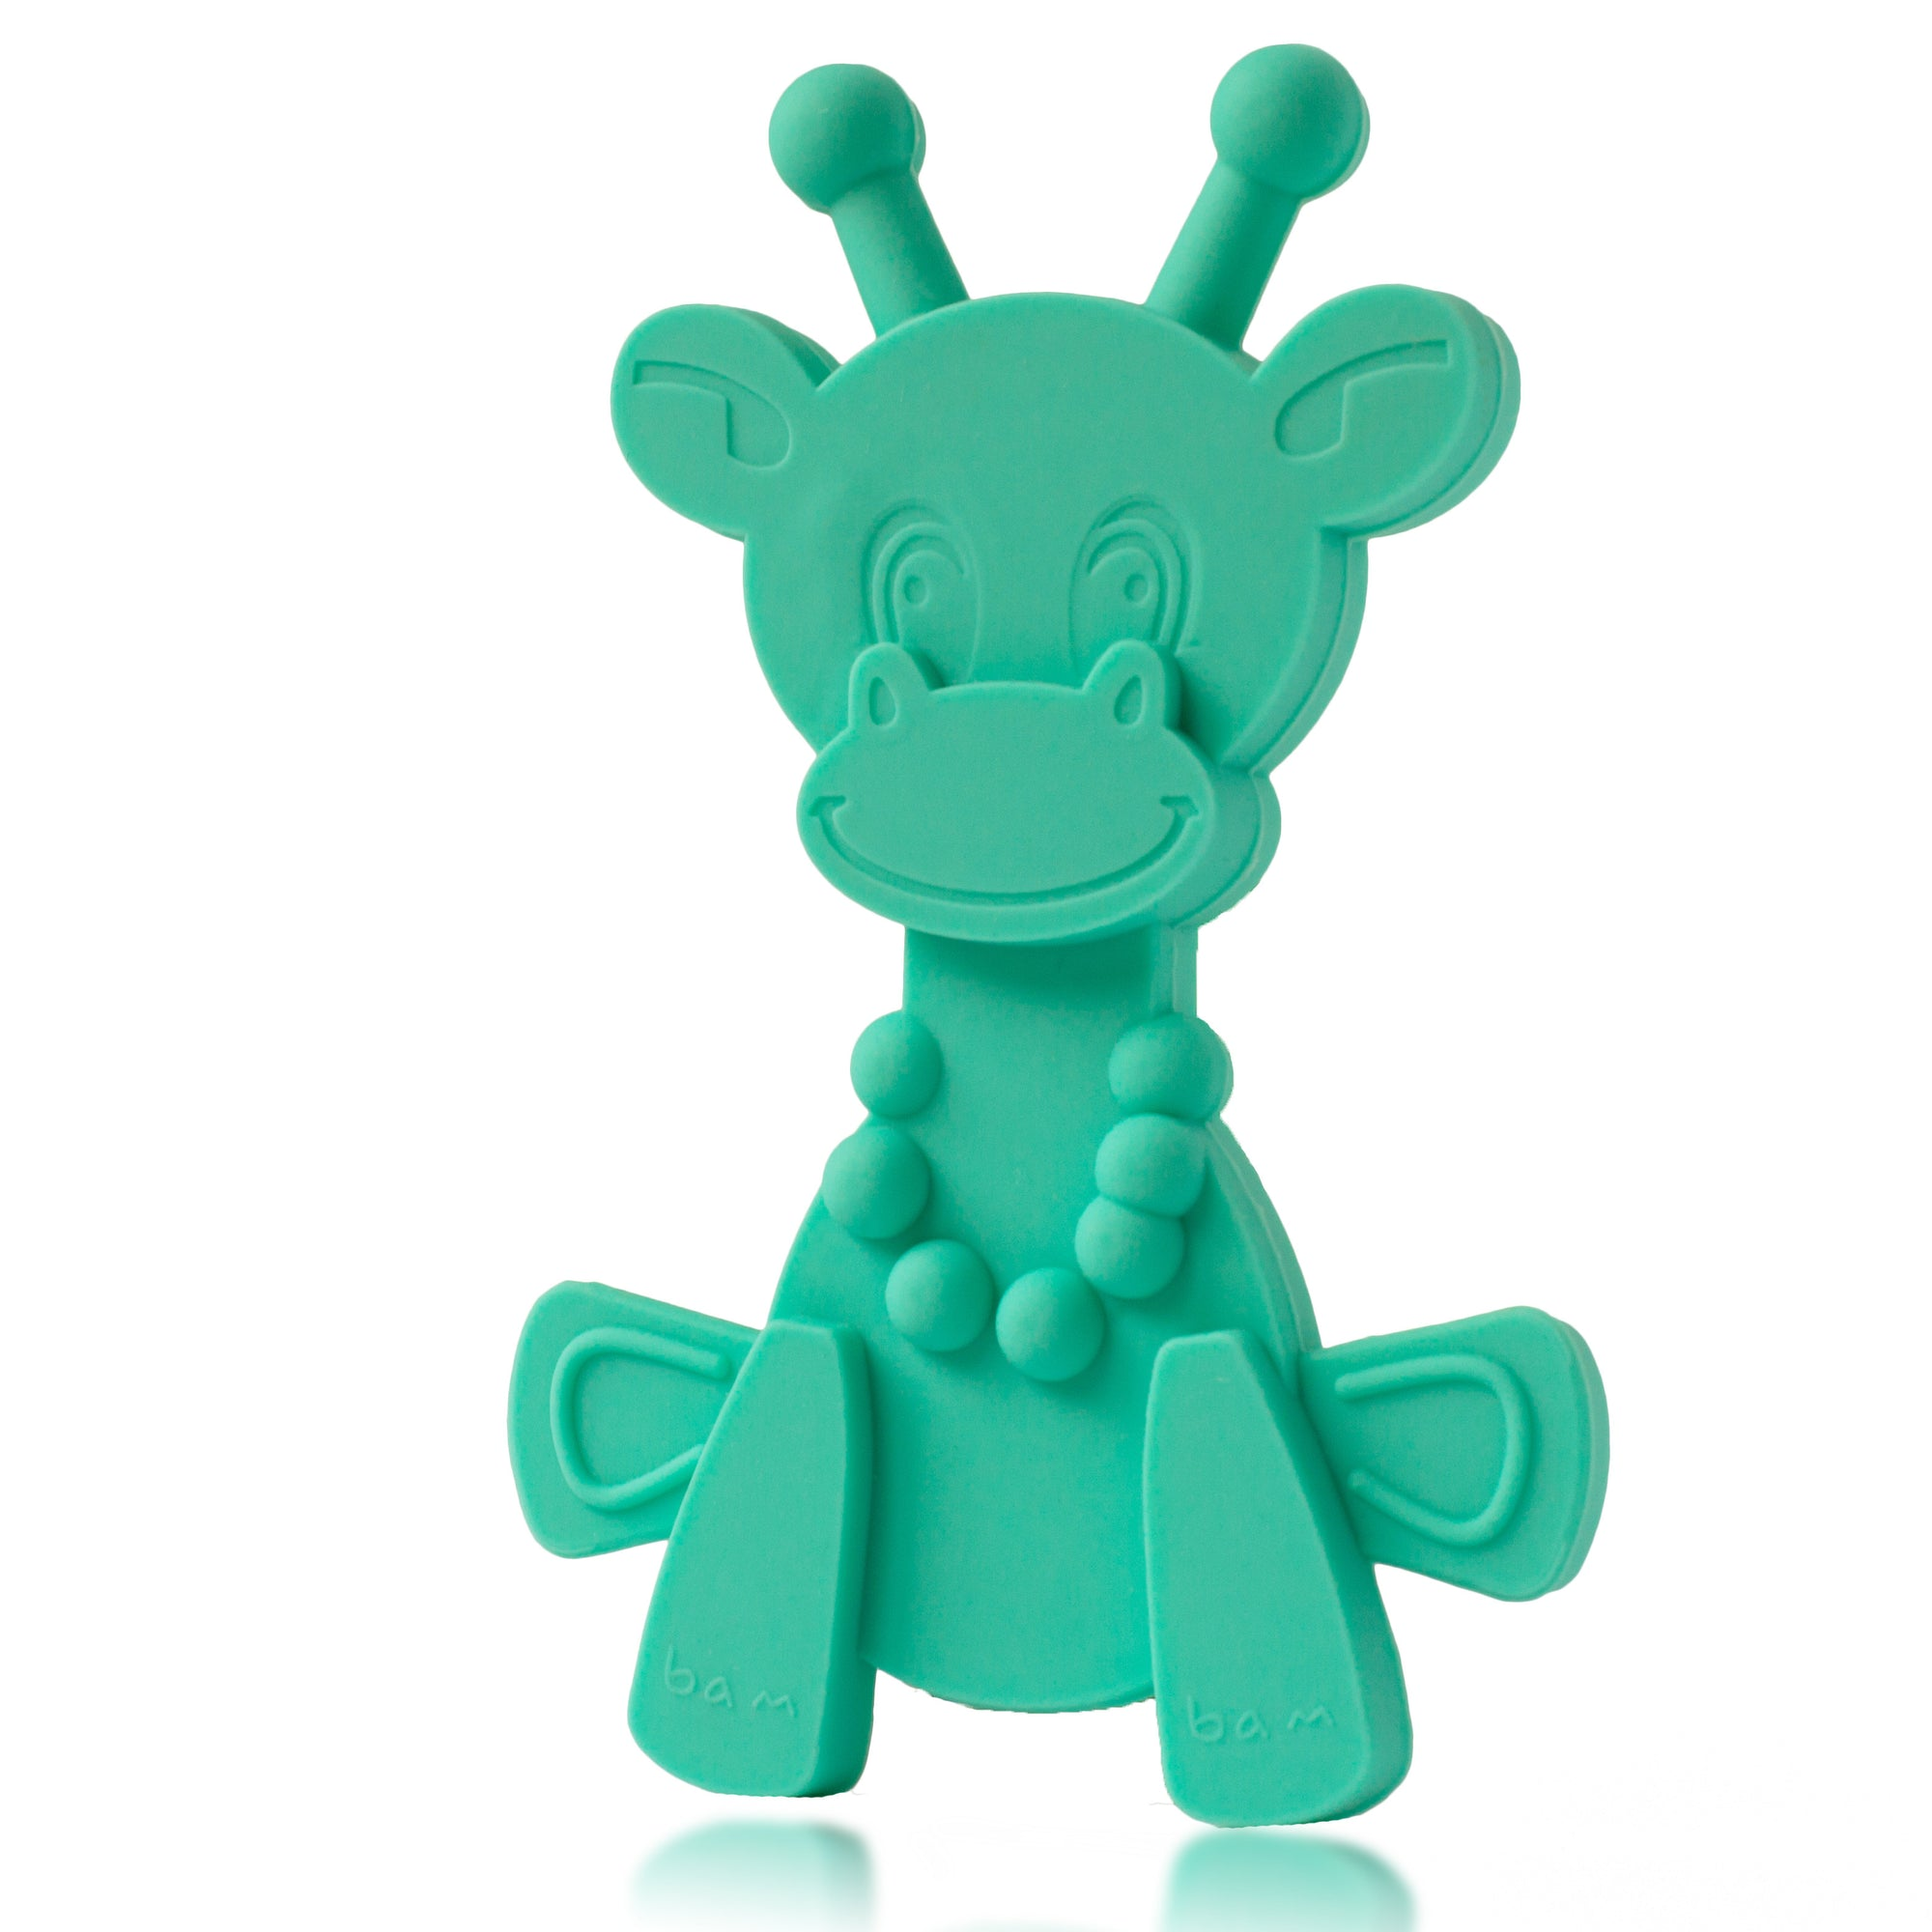 Little bamBAM Baby Teething Toy - Turquoise